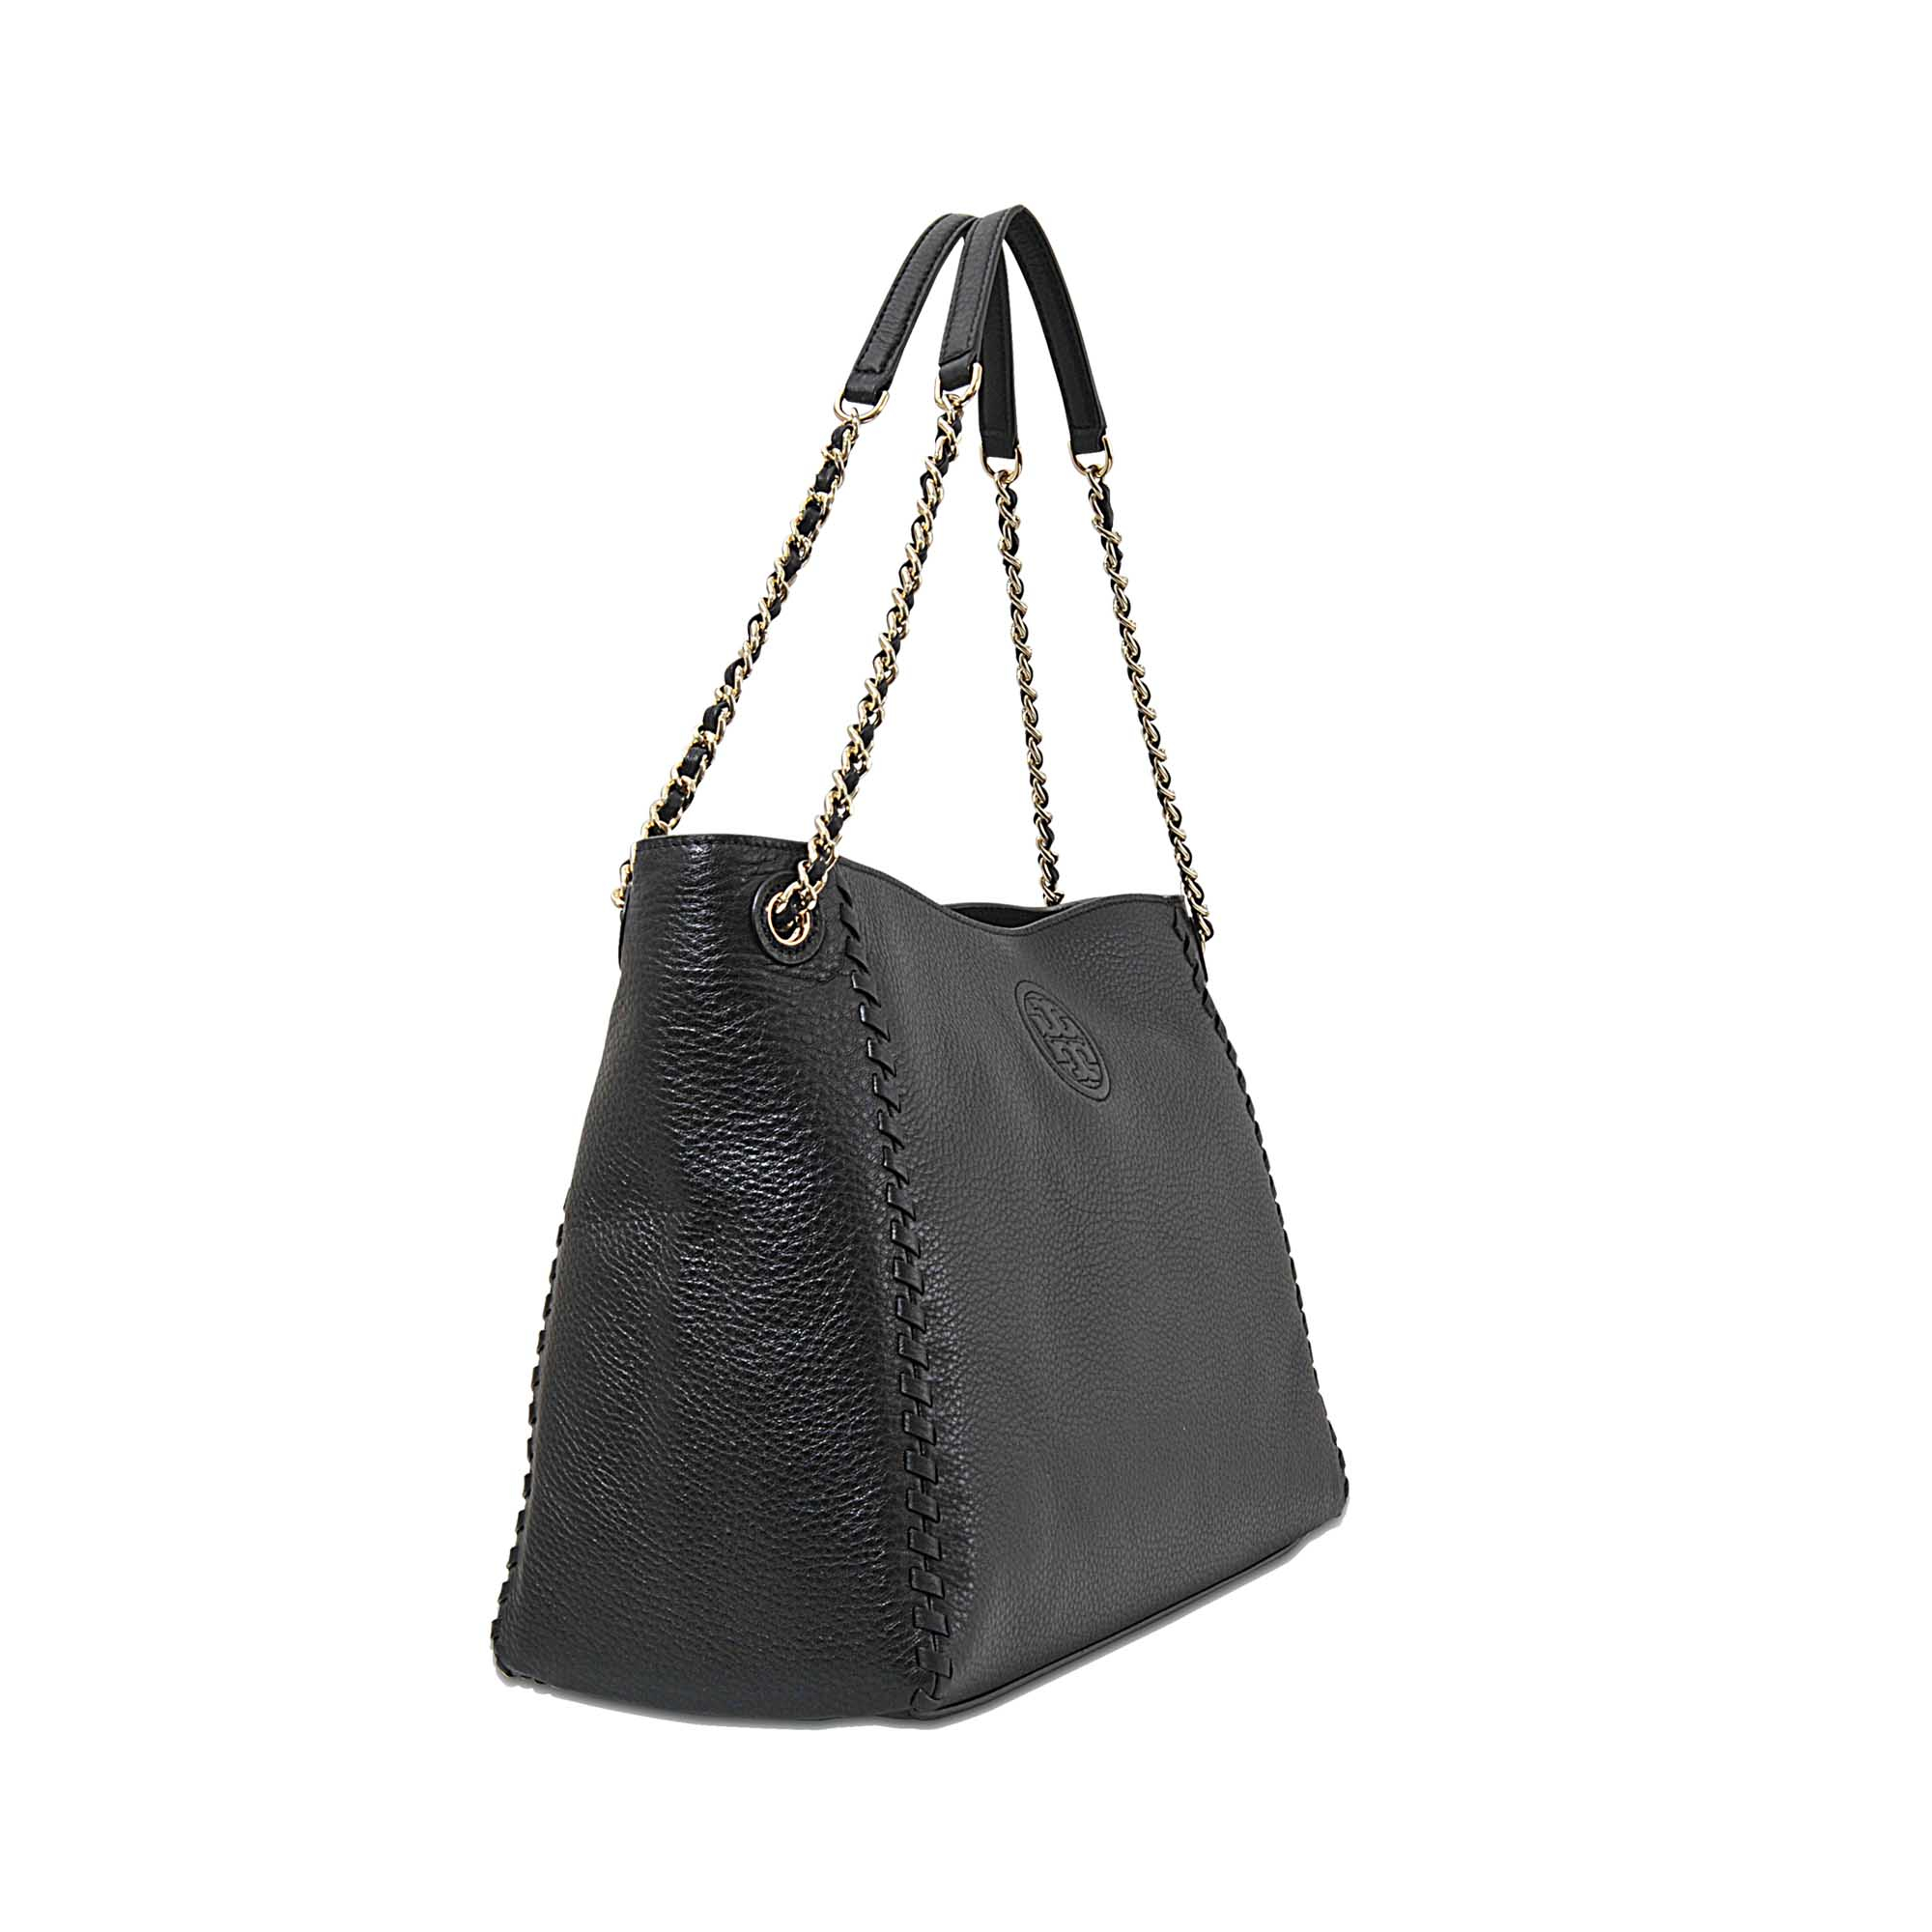 7438a1d3895 Tory Burch Marion Chain-shoulder Slouchy Tote in Black - Lyst